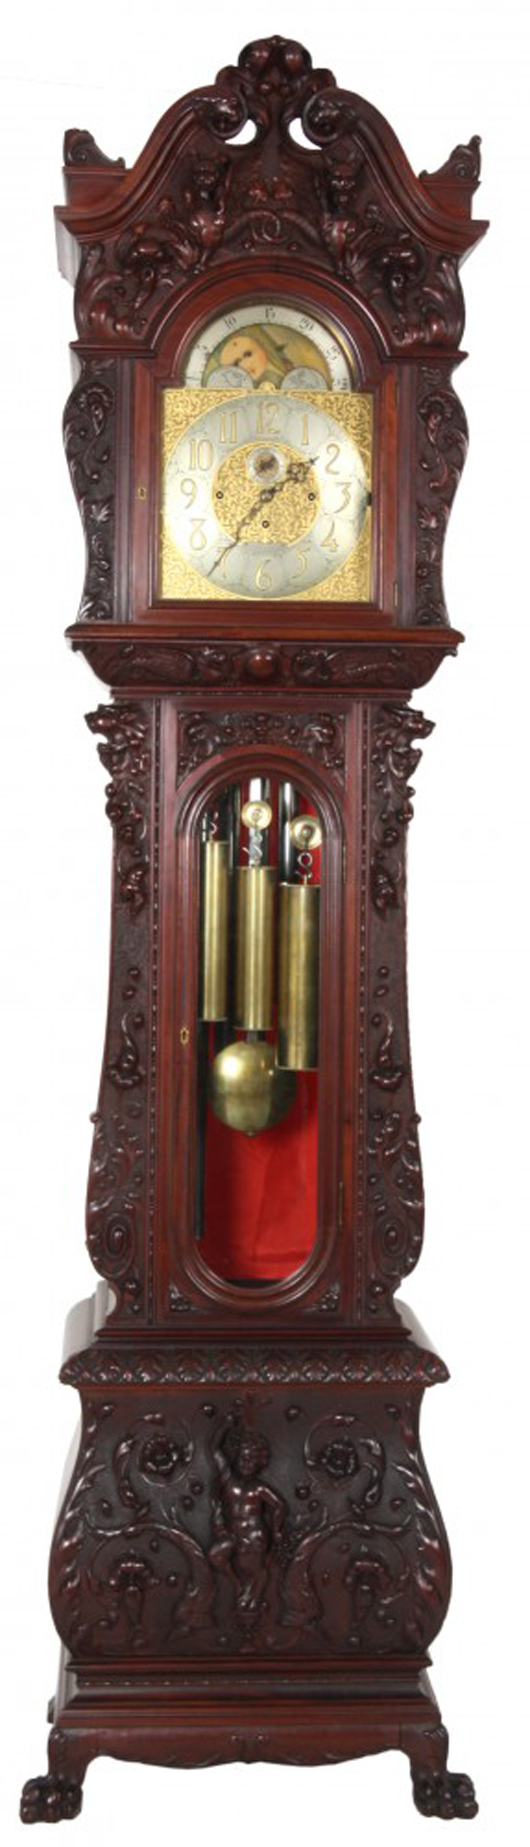 Tiffany & Co. grandfather clock with mahogany case attributed to R.J. Horner, 105 inches tall (est. $15,000-$20,000). Fontaine's Auction Gallery image.